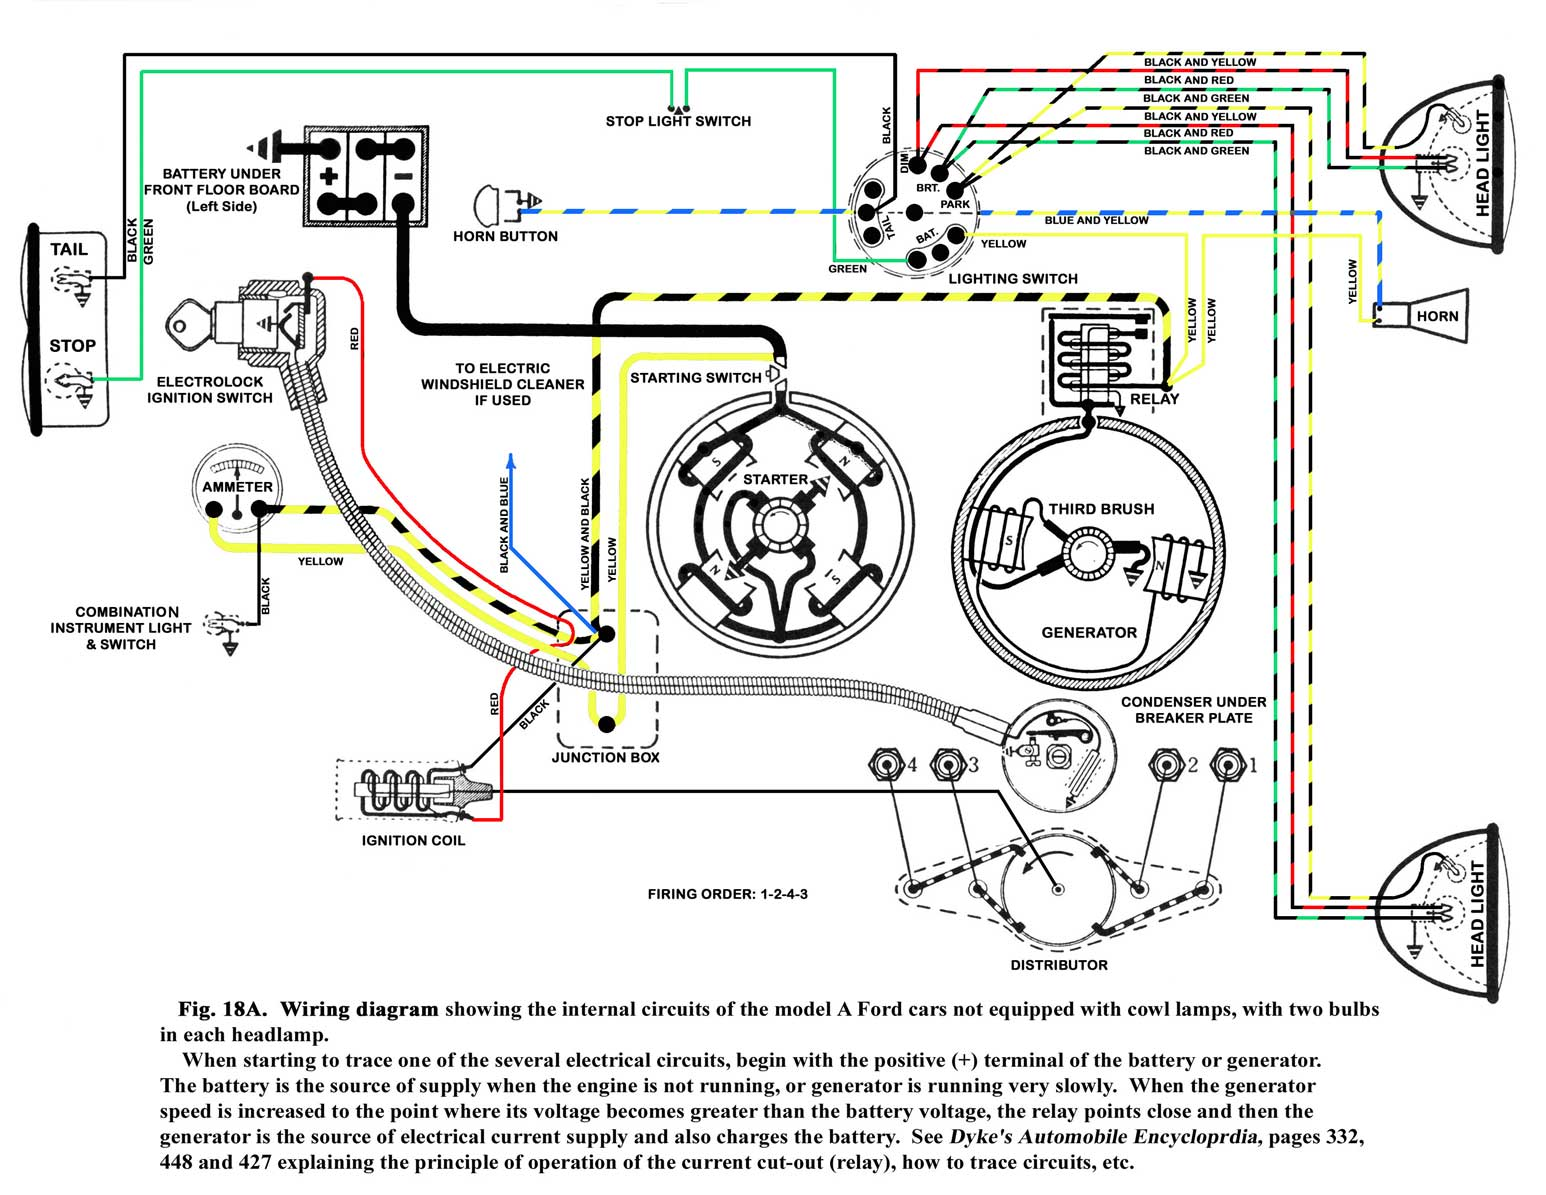 Ford Wiring Diagrams Diagram Data 1965 Mustang Alternator Model A Simple Motorhome